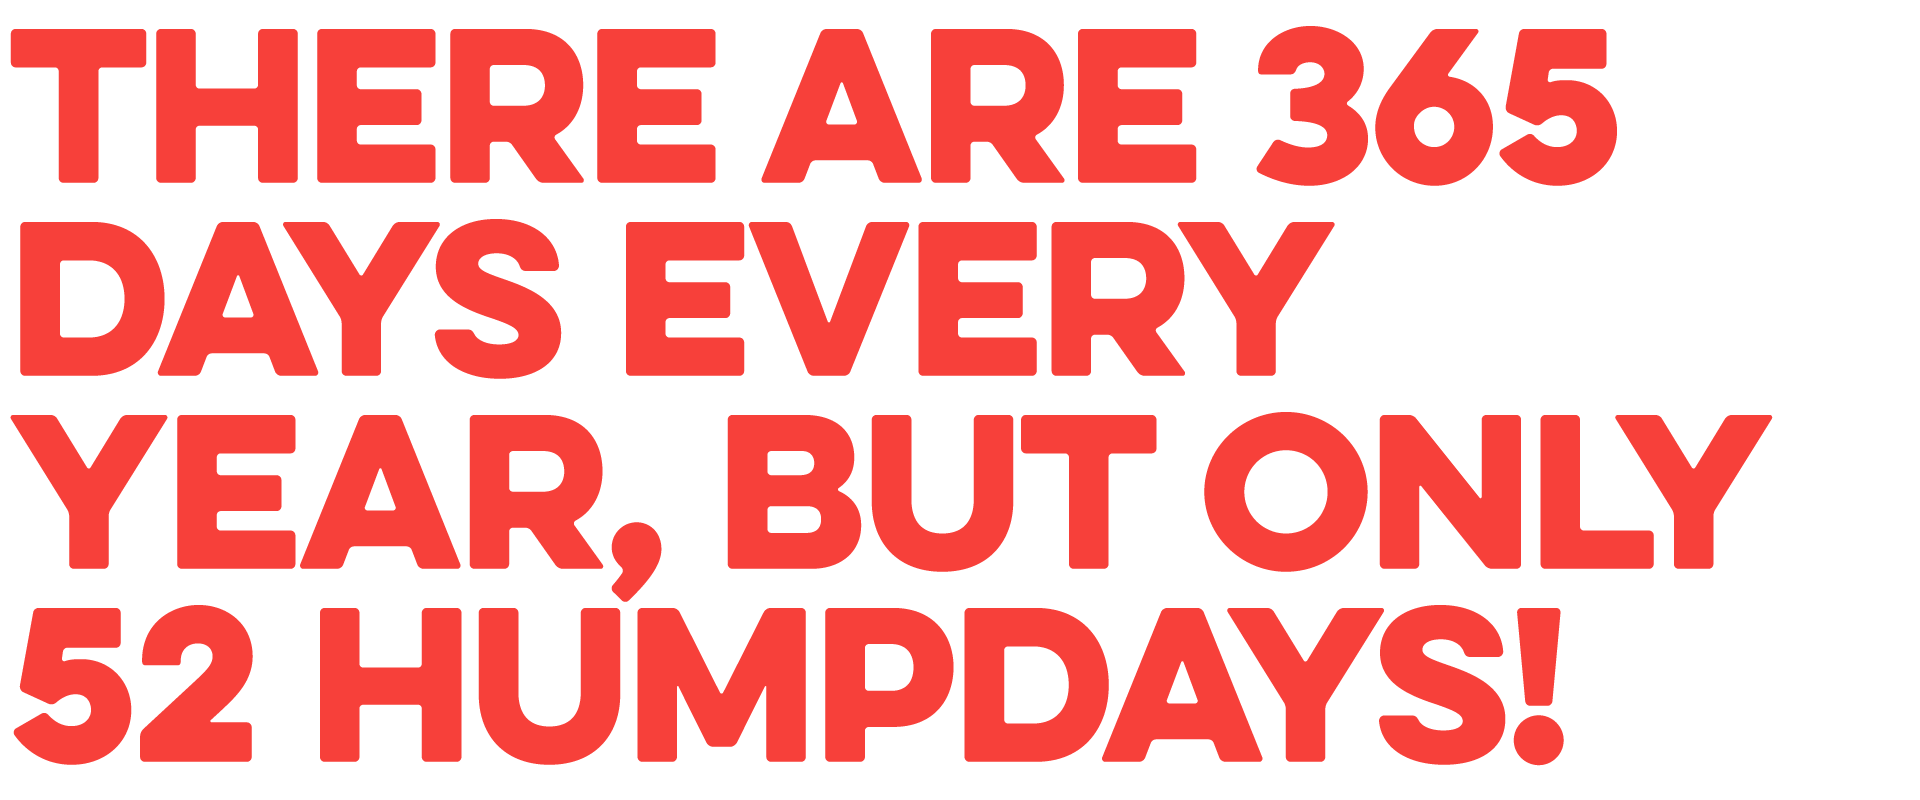 There are 365 day's every year, but on 52 Humpdays!